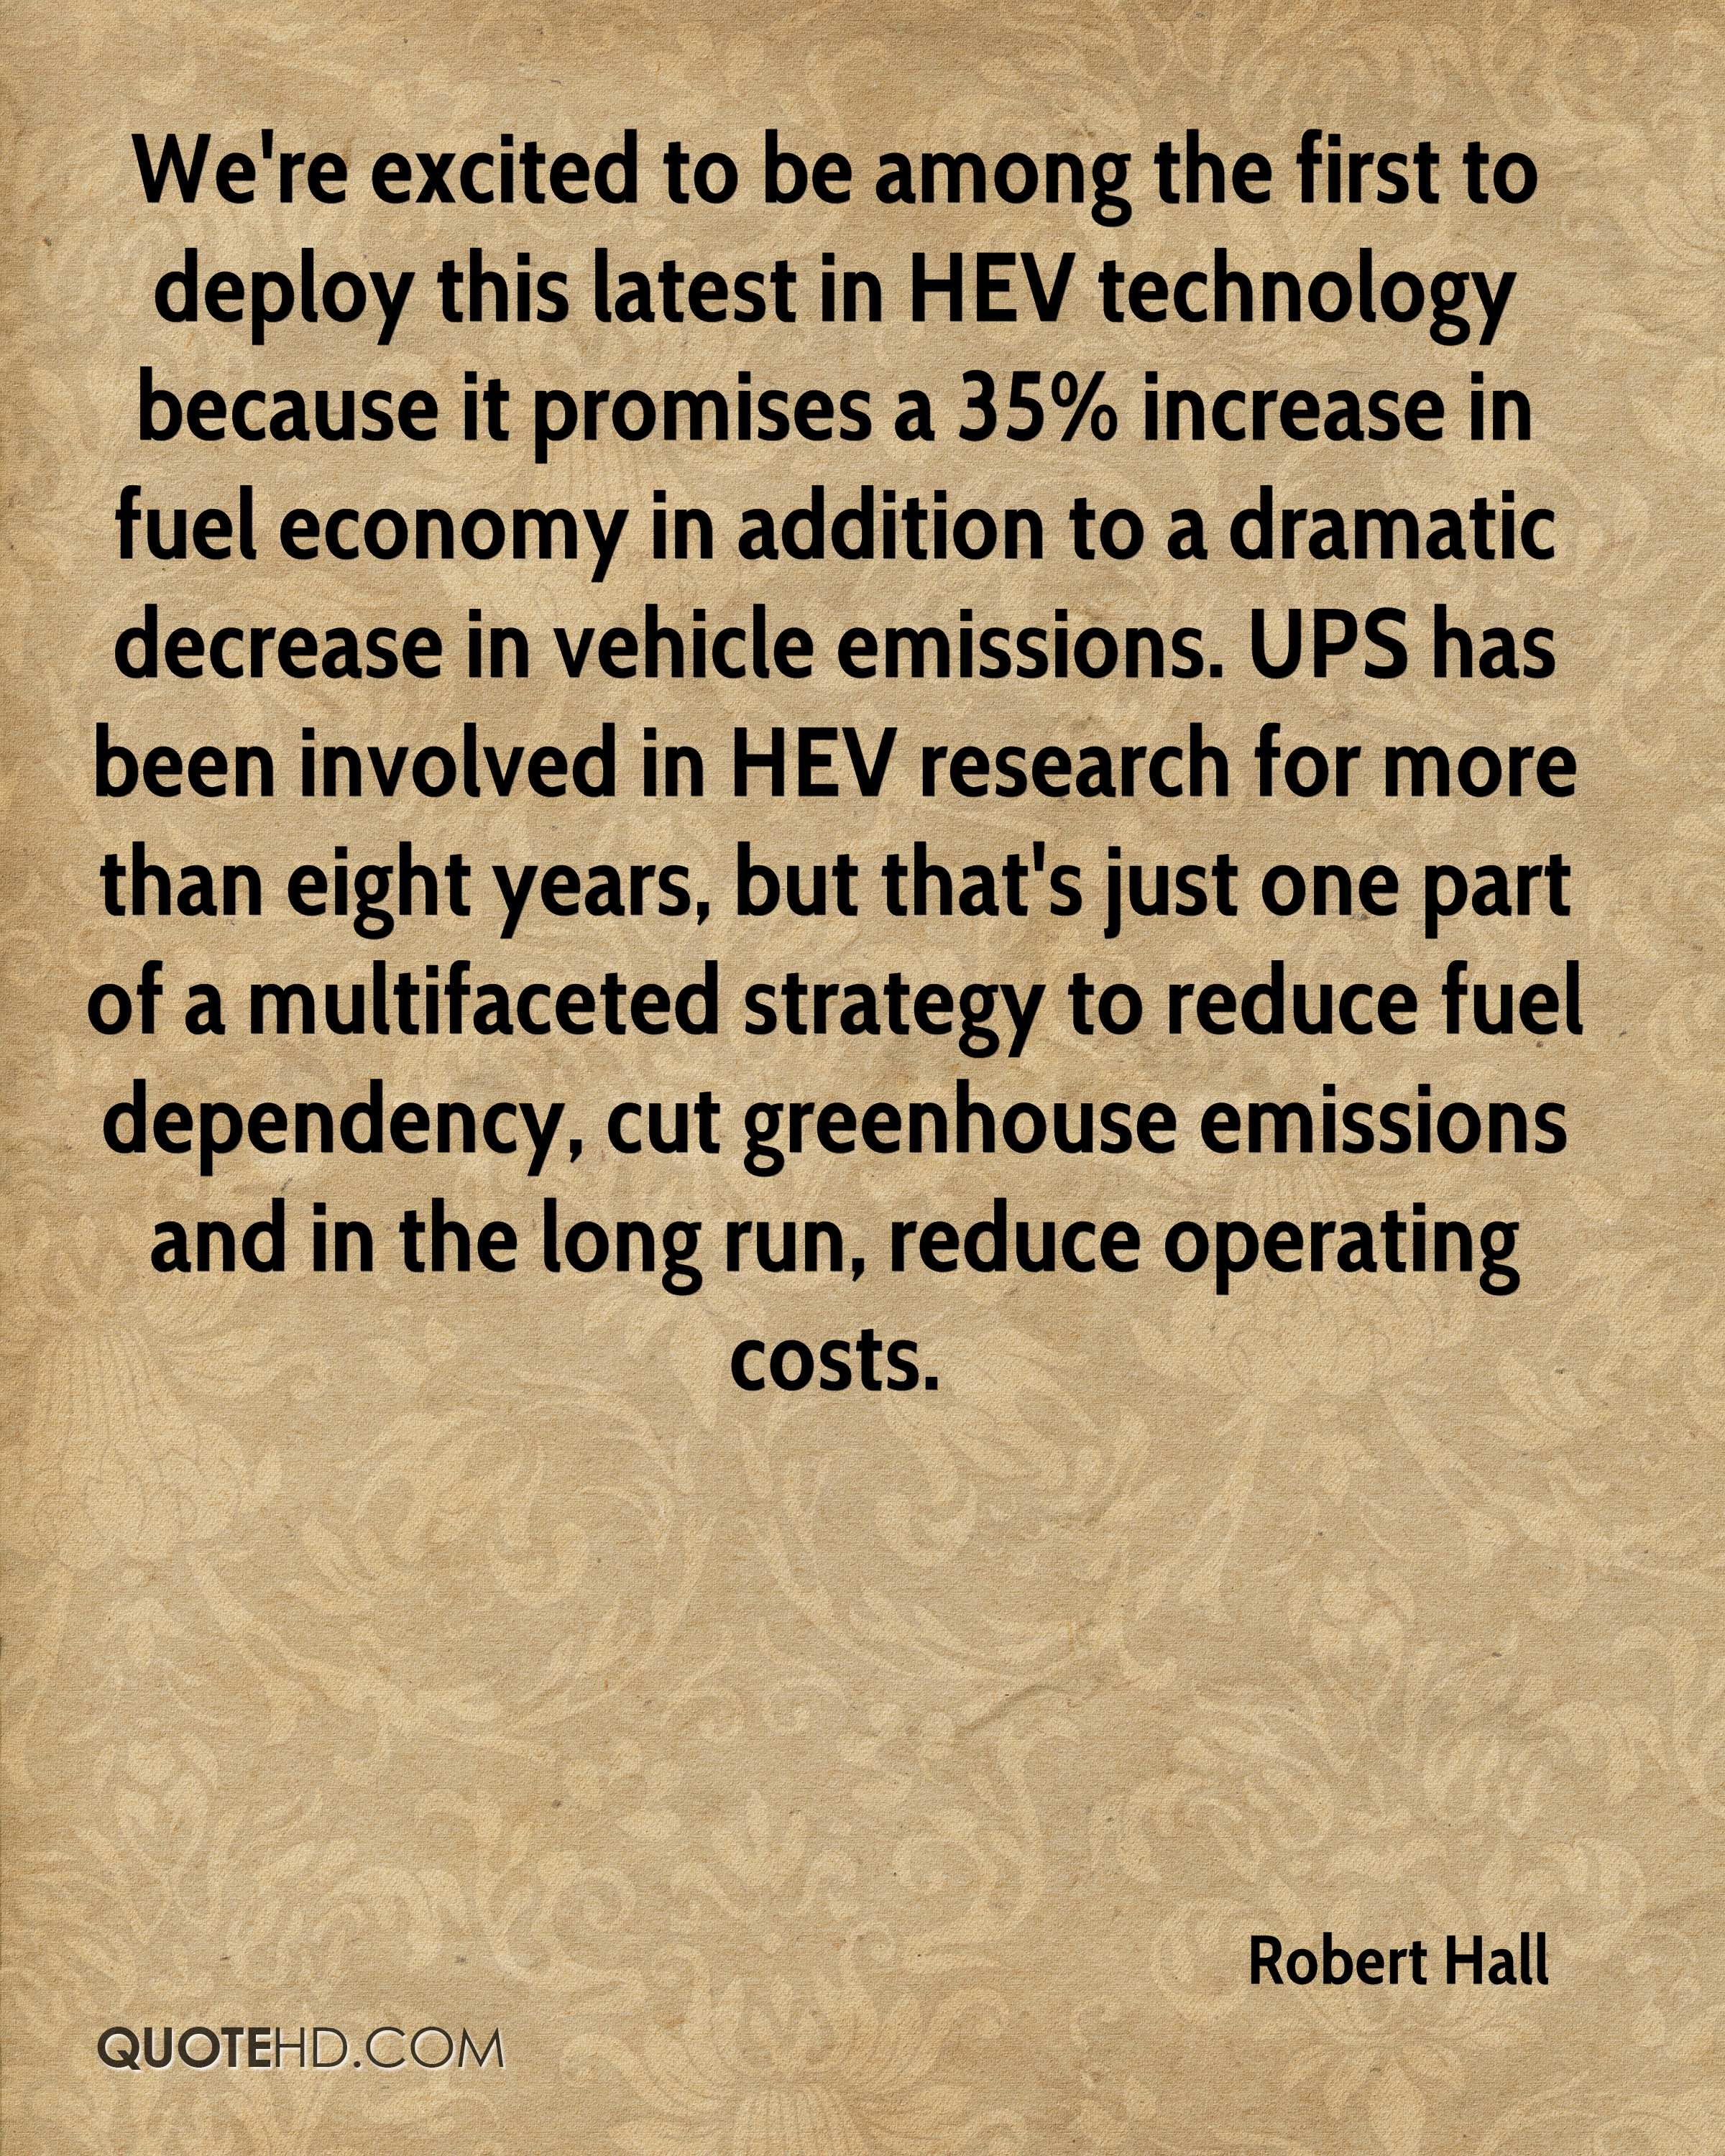 We're excited to be among the first to deploy this latest in HEV technology because it promises a 35% increase in fuel economy in addition to a dramatic decrease in vehicle emissions. UPS has been involved in HEV research for more than eight years, but that's just one part of a multifaceted strategy to reduce fuel dependency, cut greenhouse emissions and in the long run, reduce operating costs.